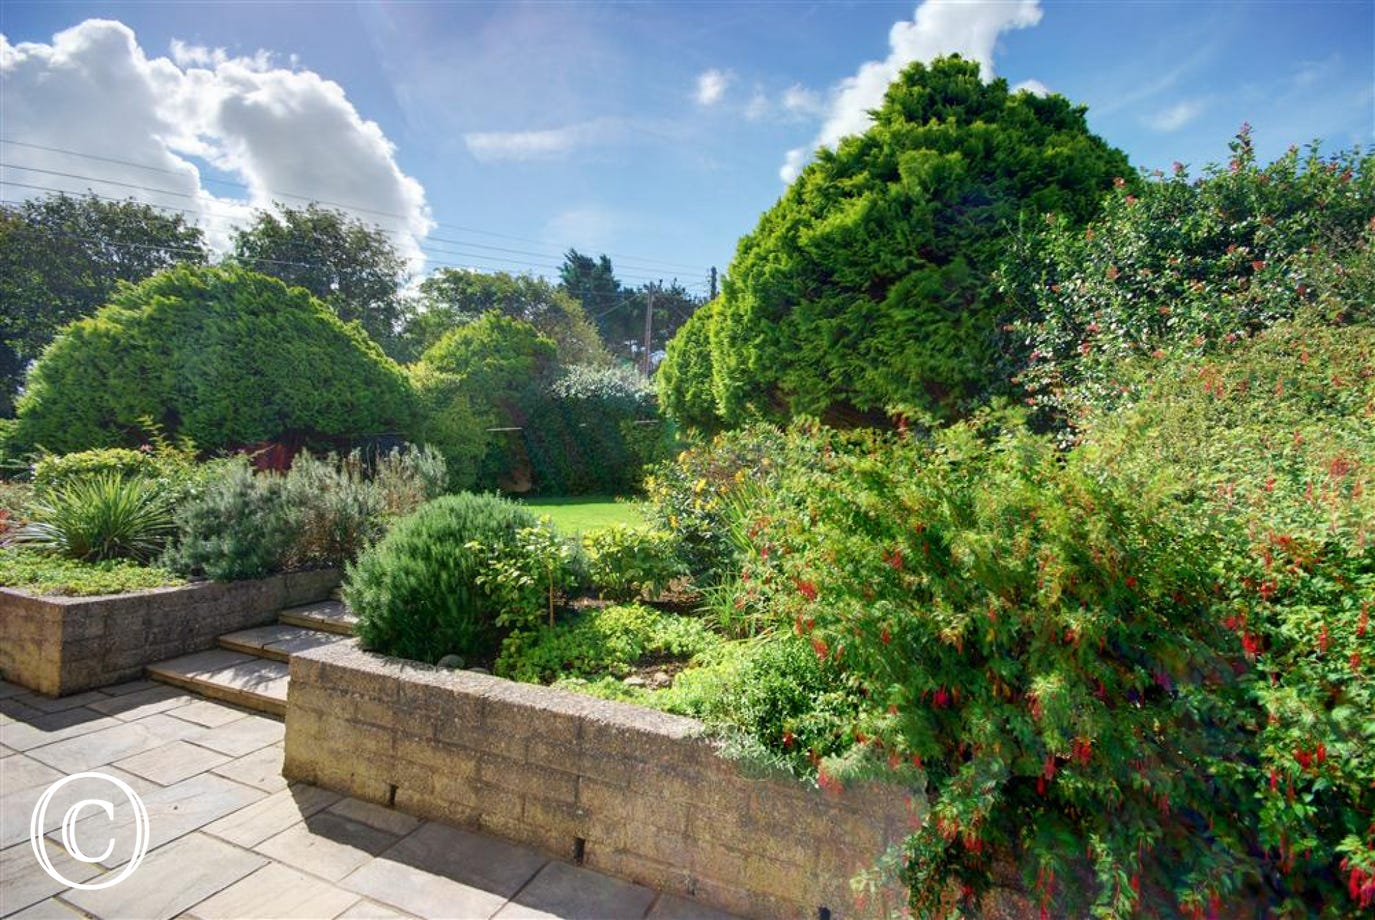 The gardens are beautifully kept and have mature trees and shrubs